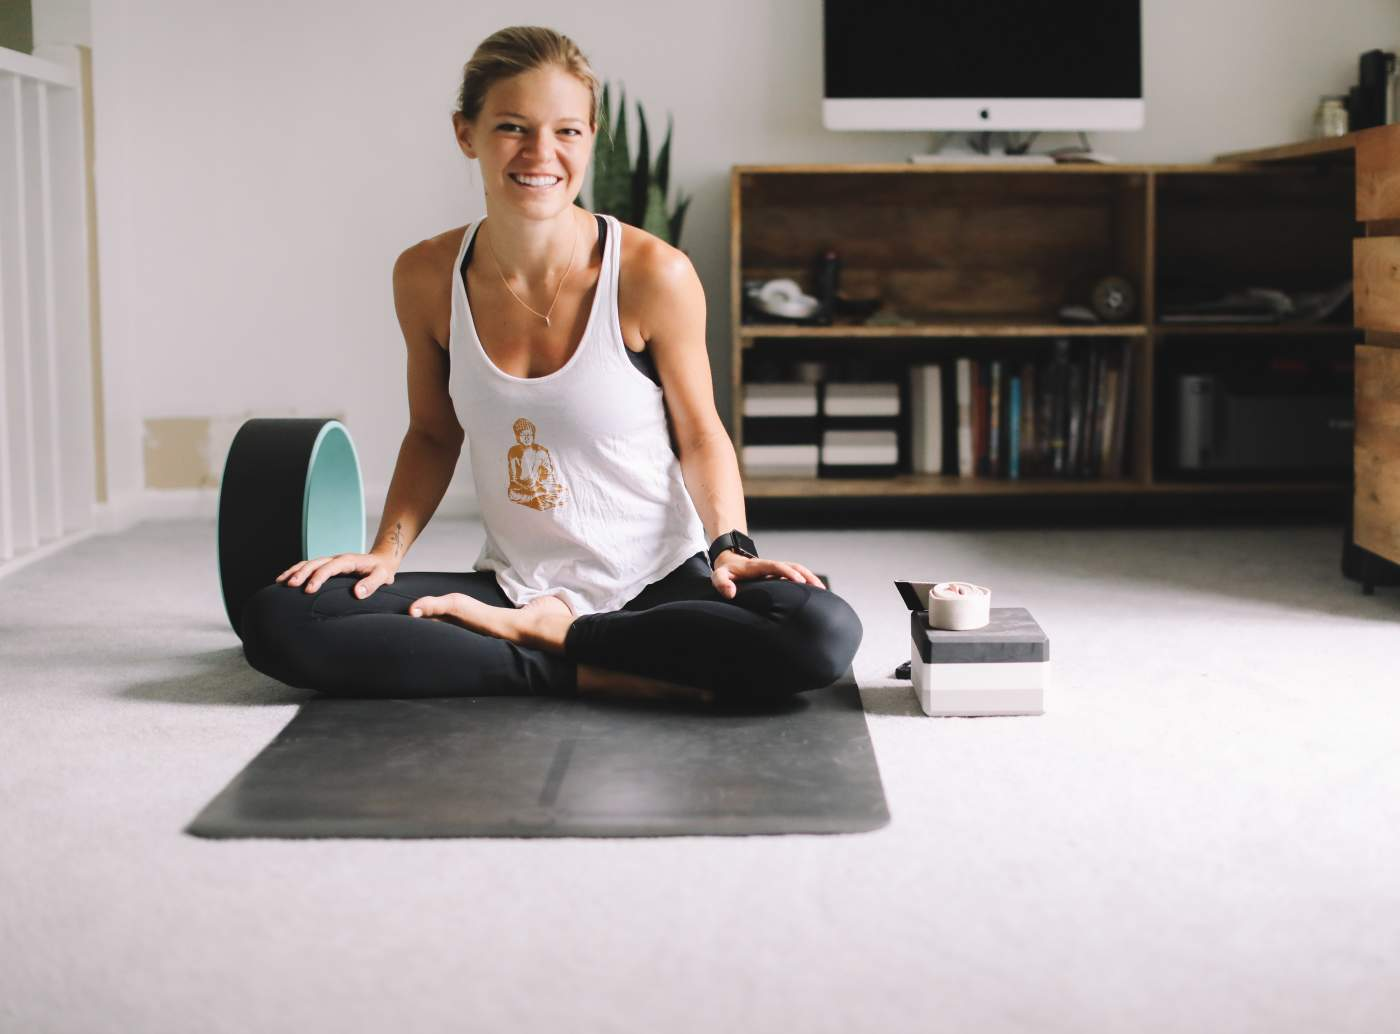 How to Create a Home Yoga or  Meditation Studio:  An Interview with a Yoga Teacher